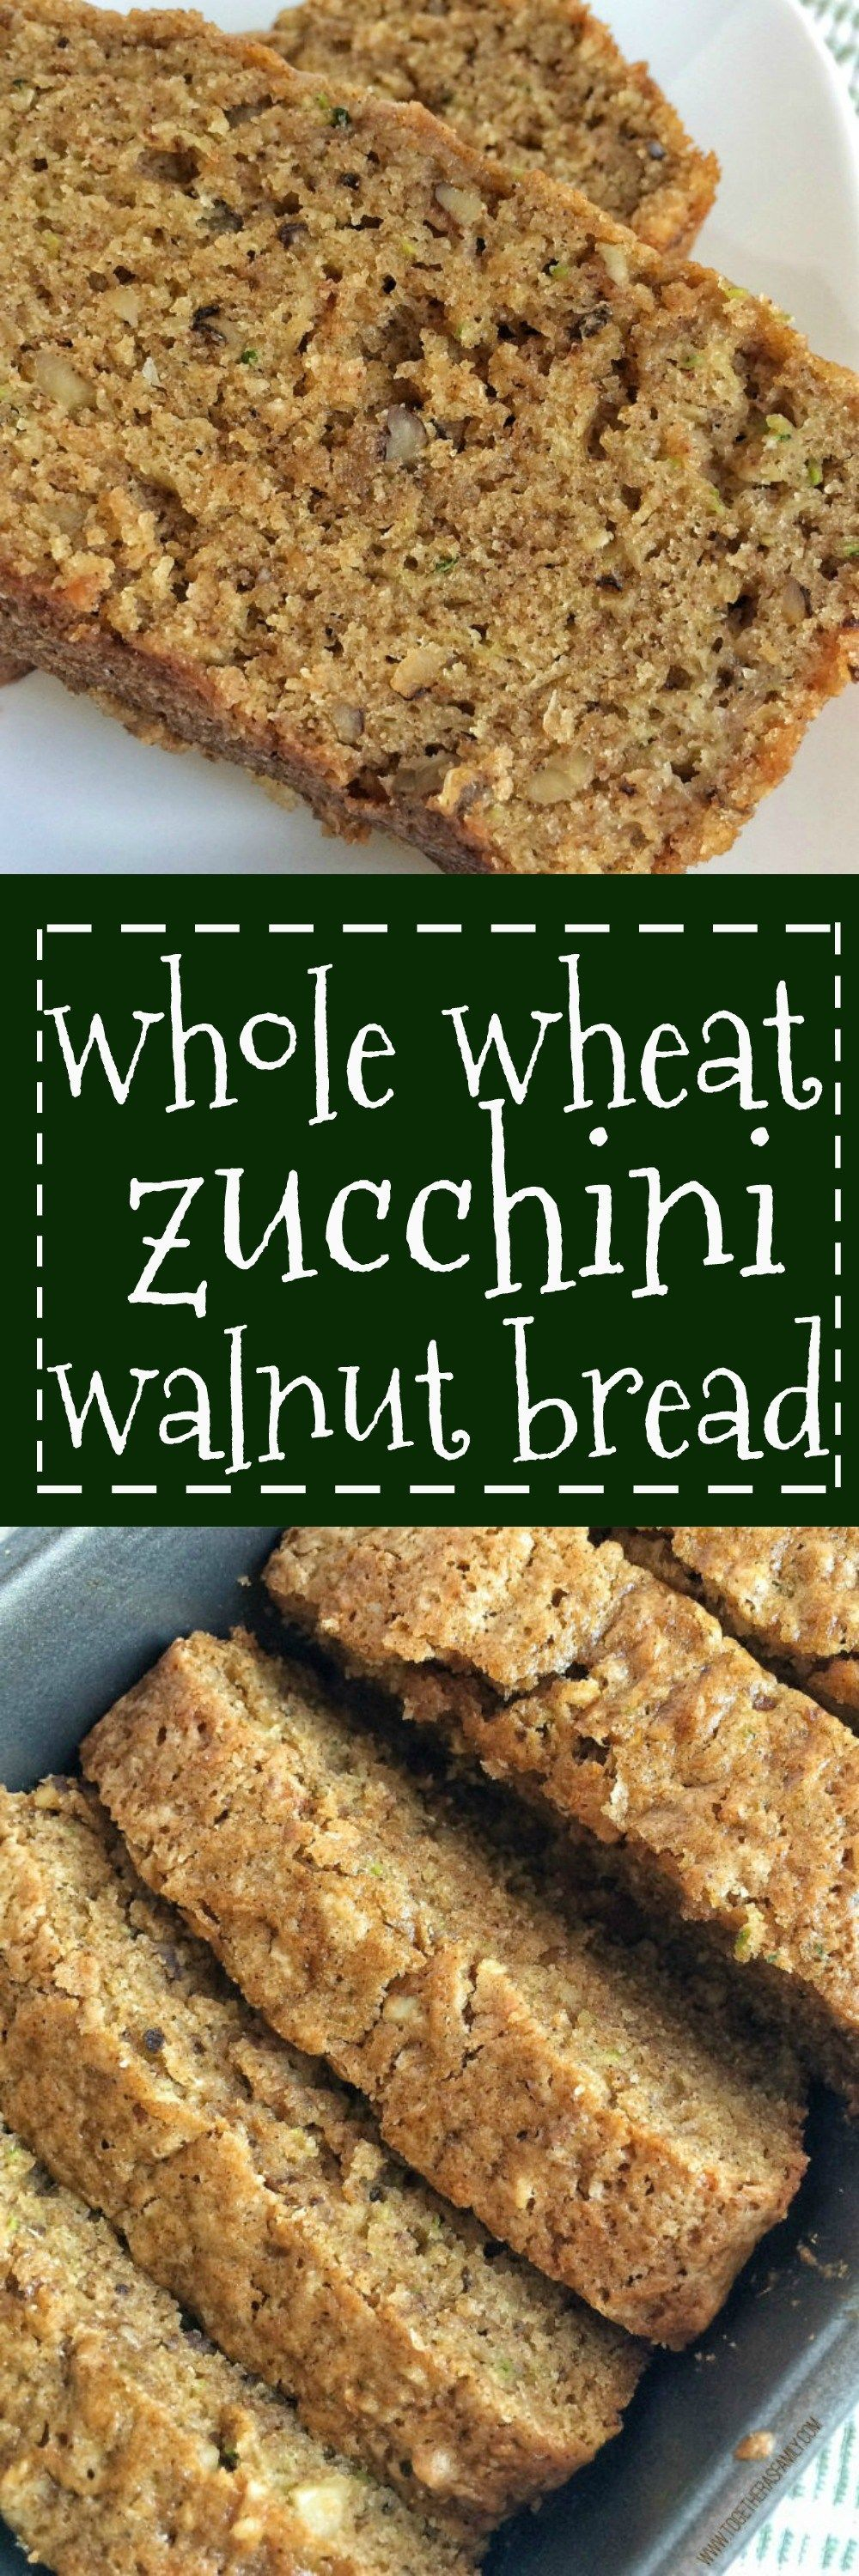 Whole Wheat Zucchini Walnut Bread | Recipe | Banana ...